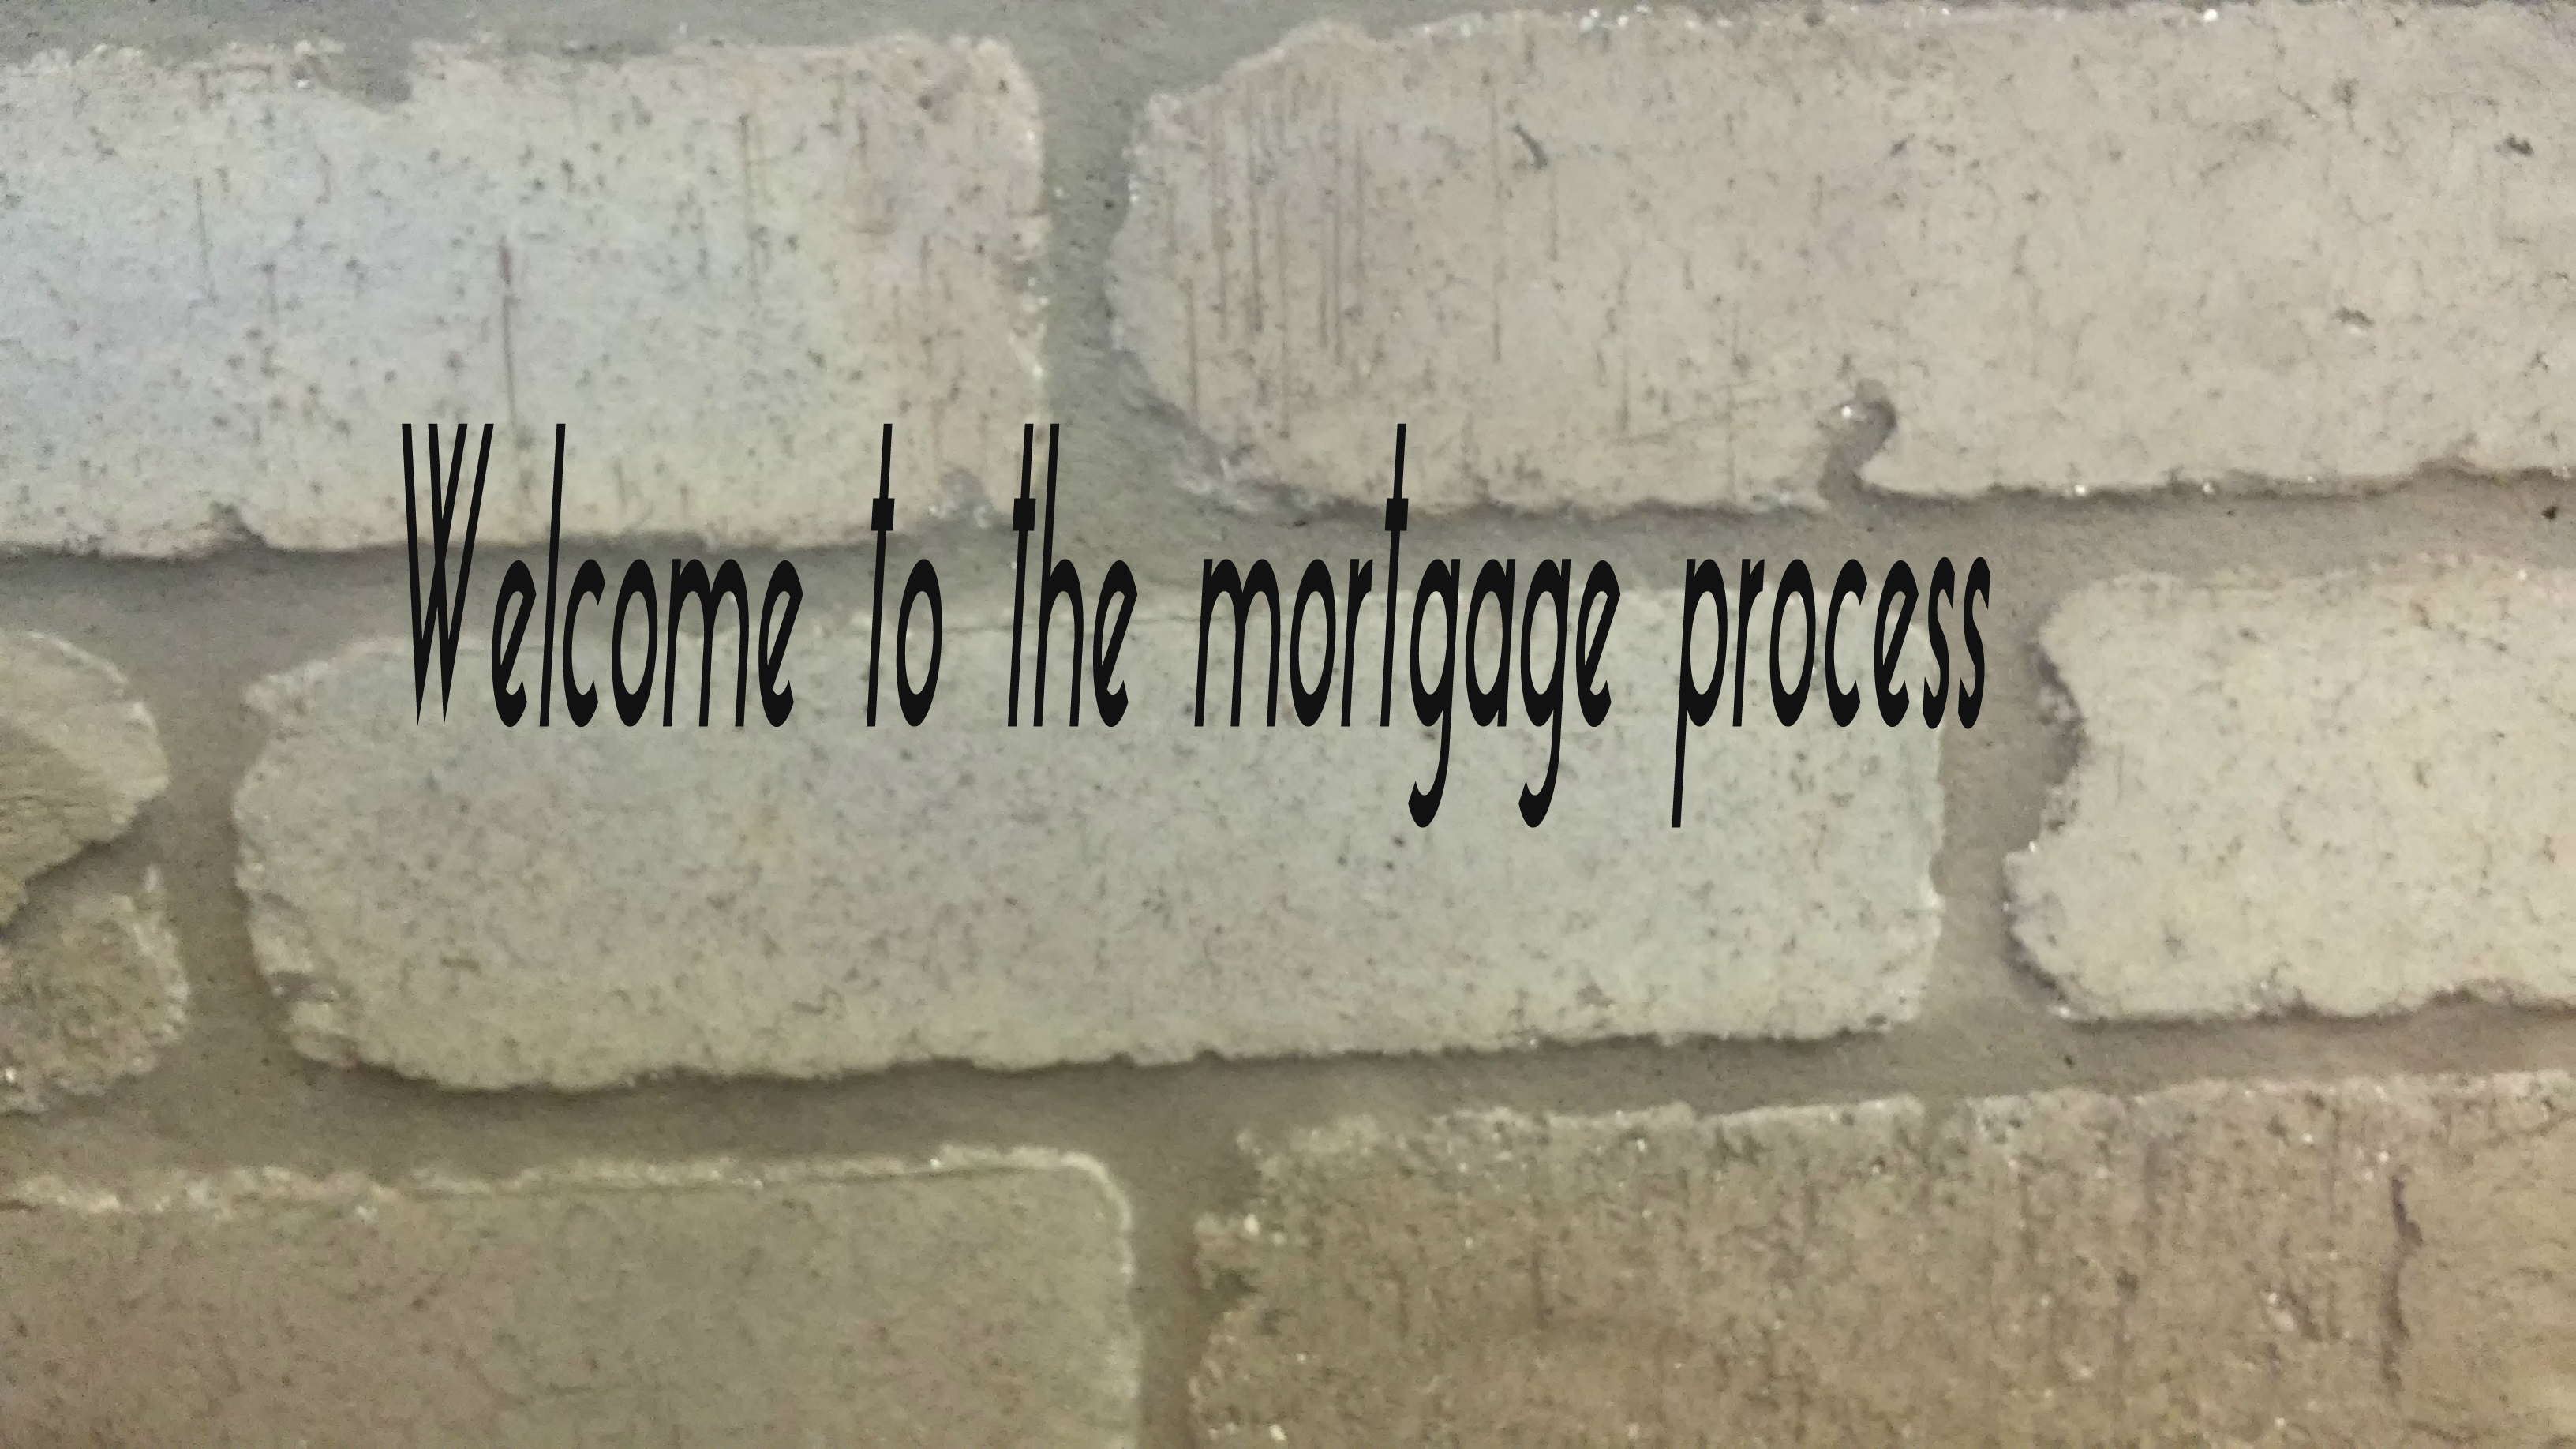 Welcome to the mortgage process